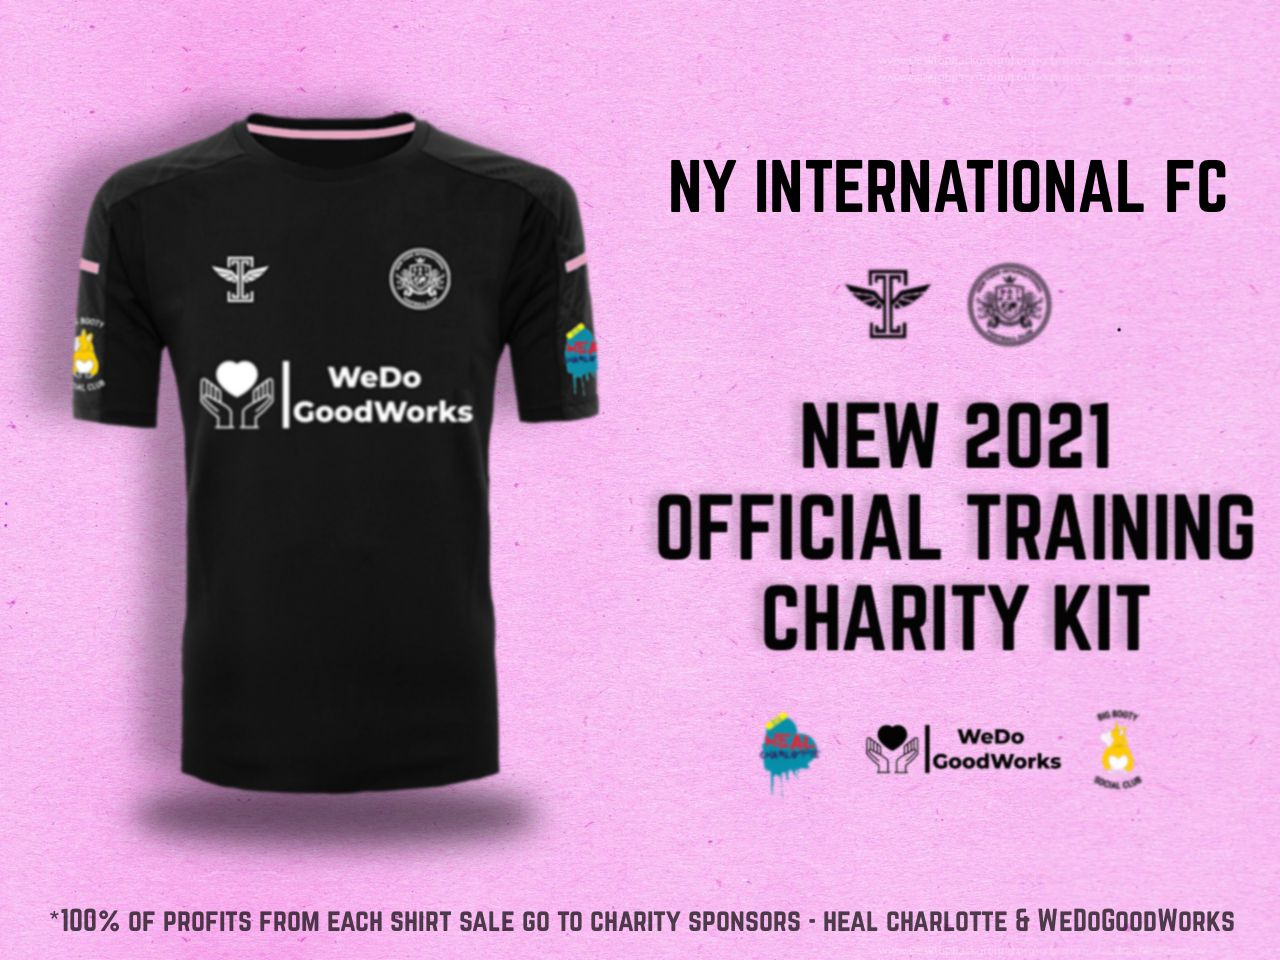 NYIFC Press Release, Charity Release and Training Sponsors Announcement